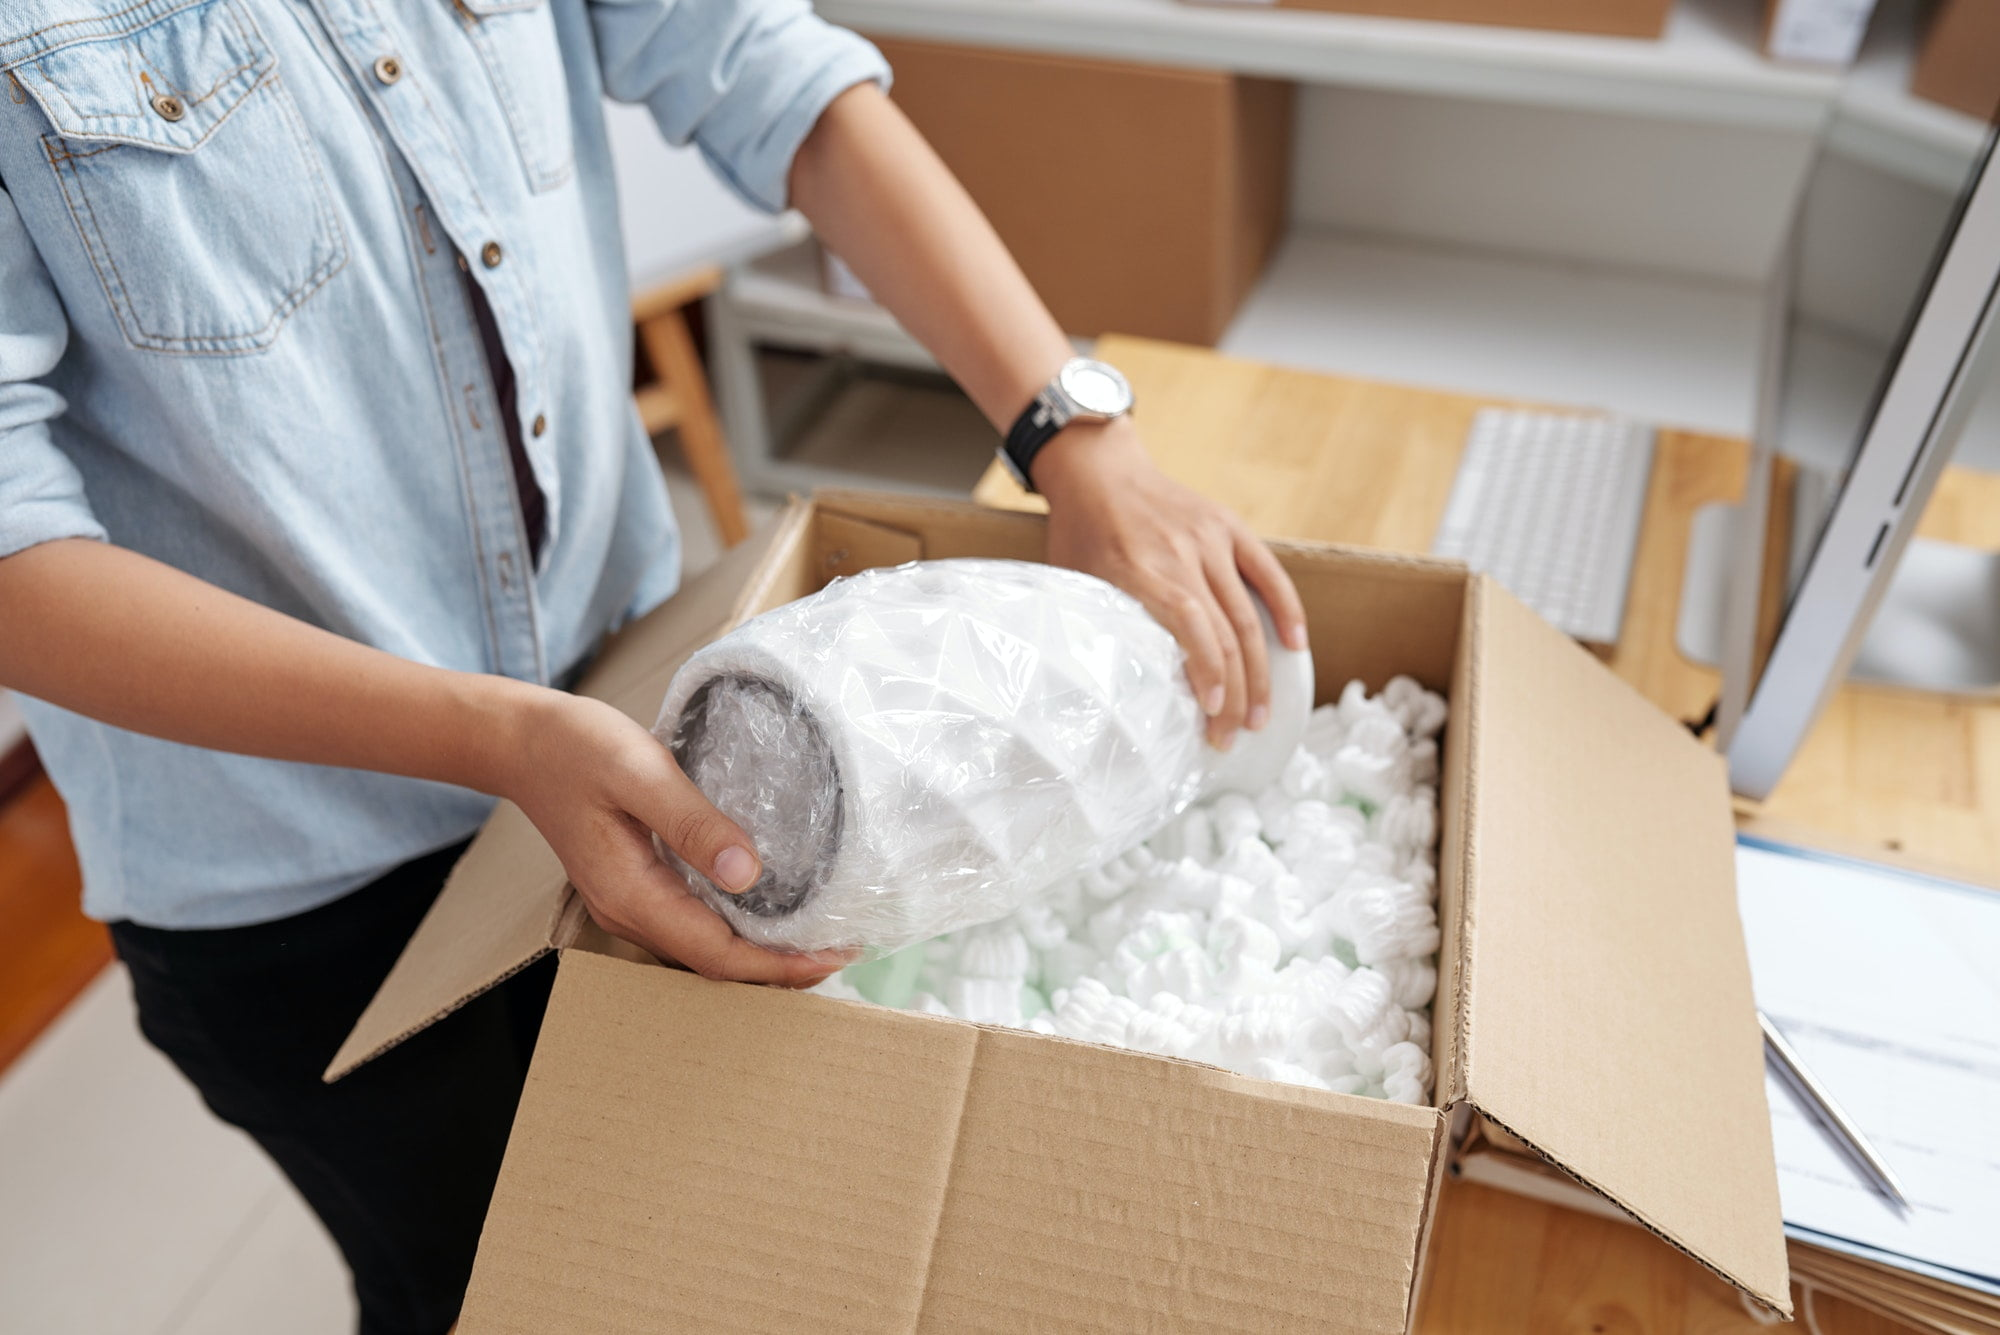 5 Packing mistakes typically made and how to avoid them